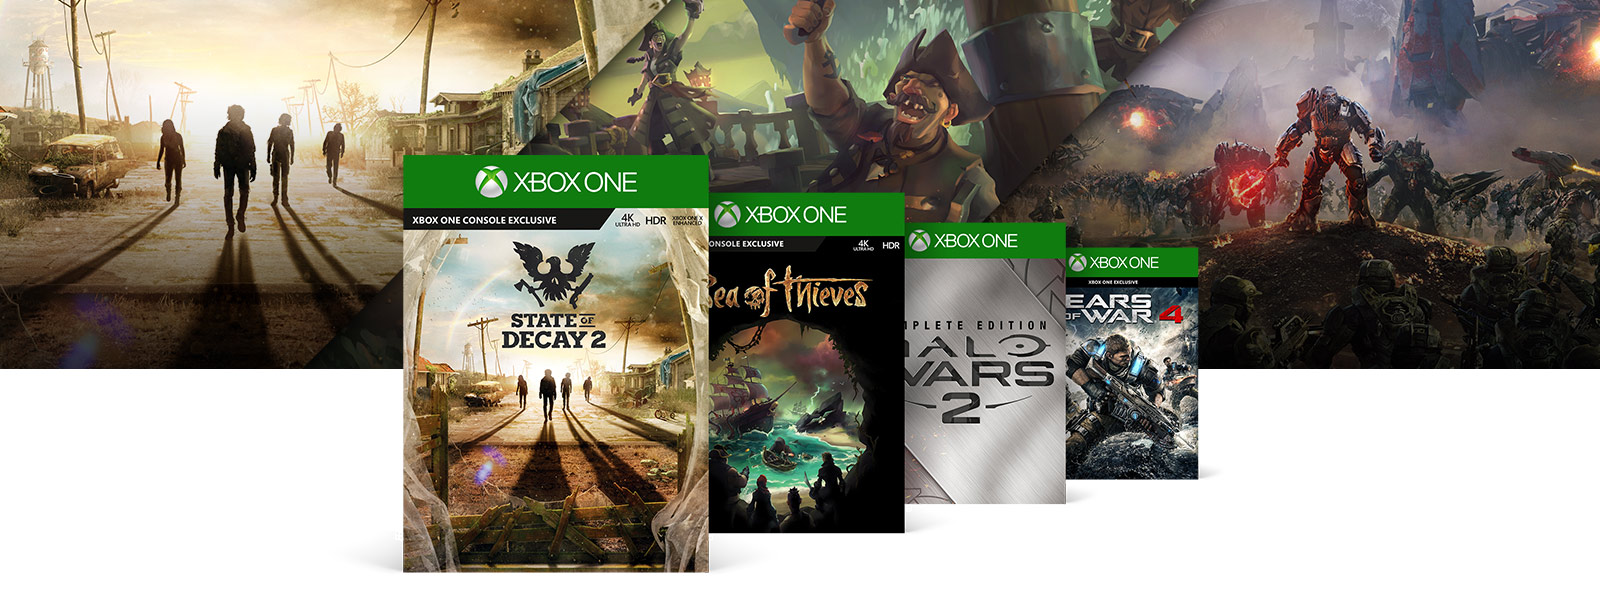 State of Decay 2, Sea of Thieves, Halo Wars 2 and Gears of War 4 boxshots in front of various Microsoft Studio Games graphics